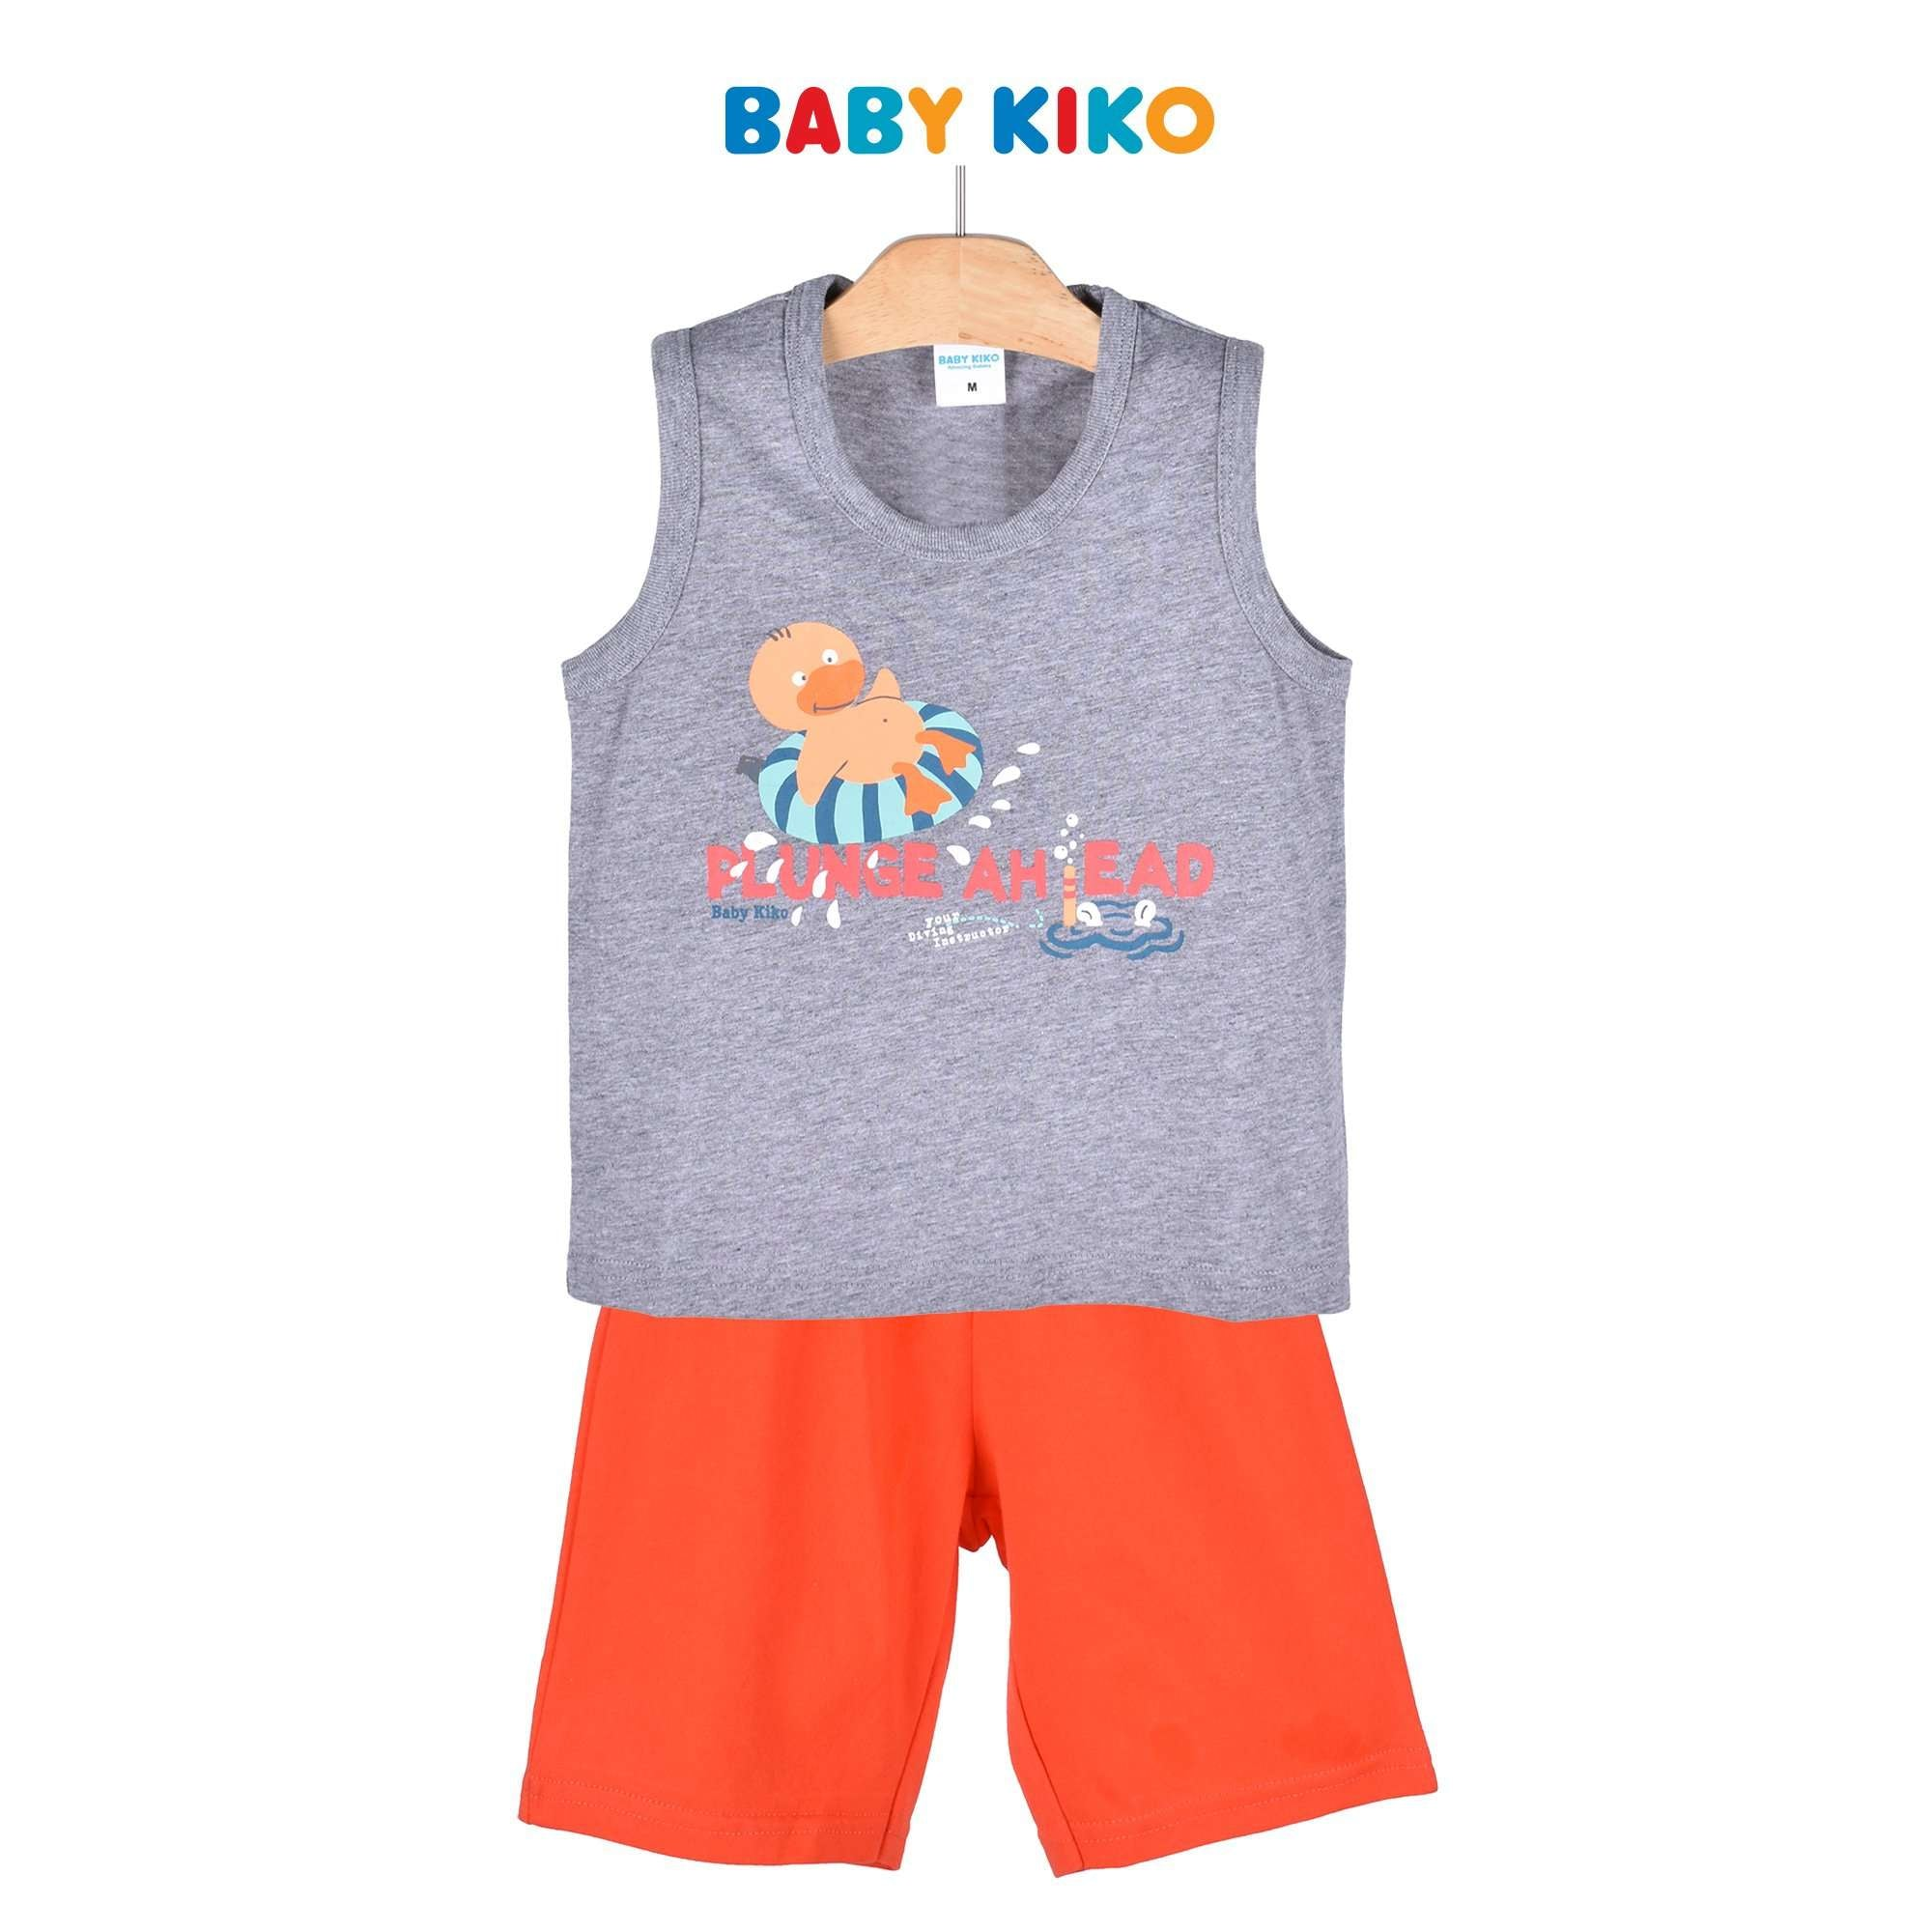 Baby KIKO Toddler Boy Sleeveless Bermuda - Melange 325141-402 : Buy Baby KIKO online at CMG.MY